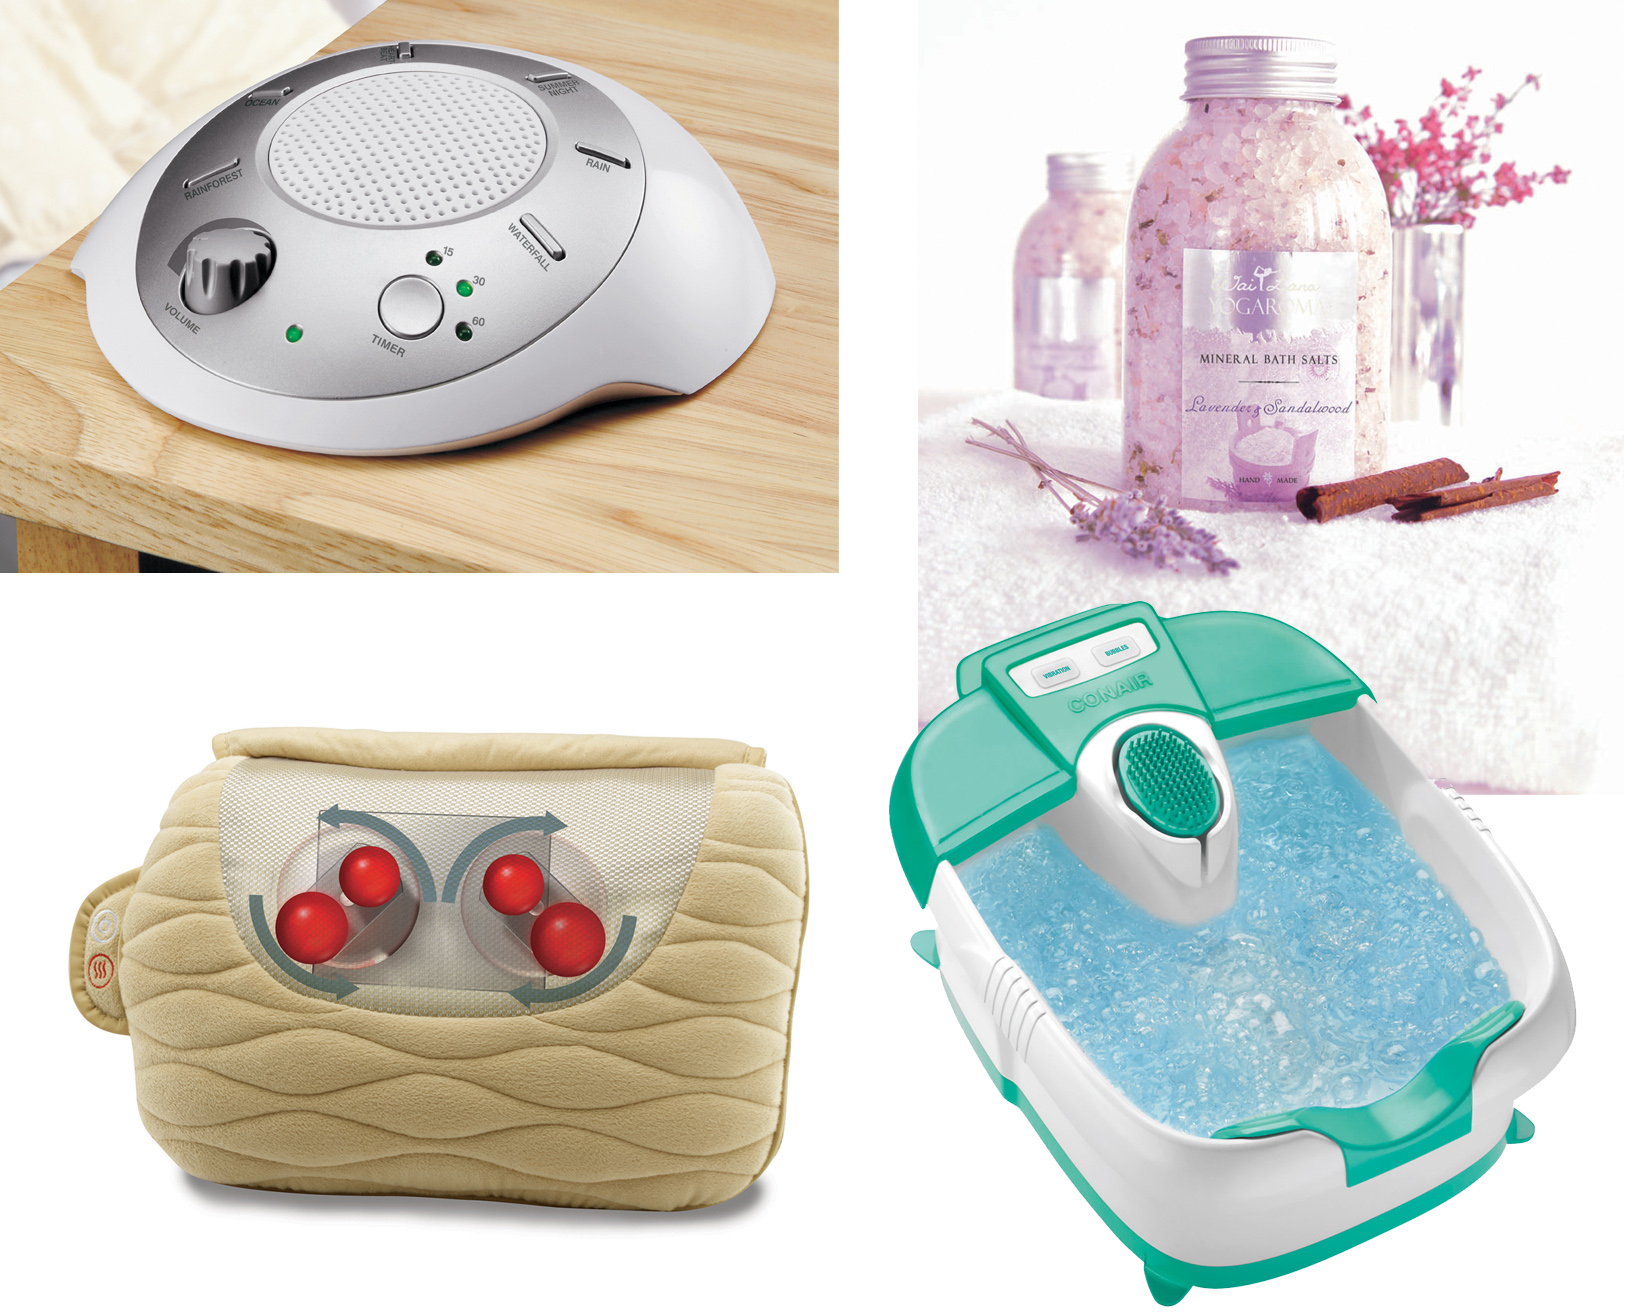 Mothers Day Gift Ideas from Top Brands